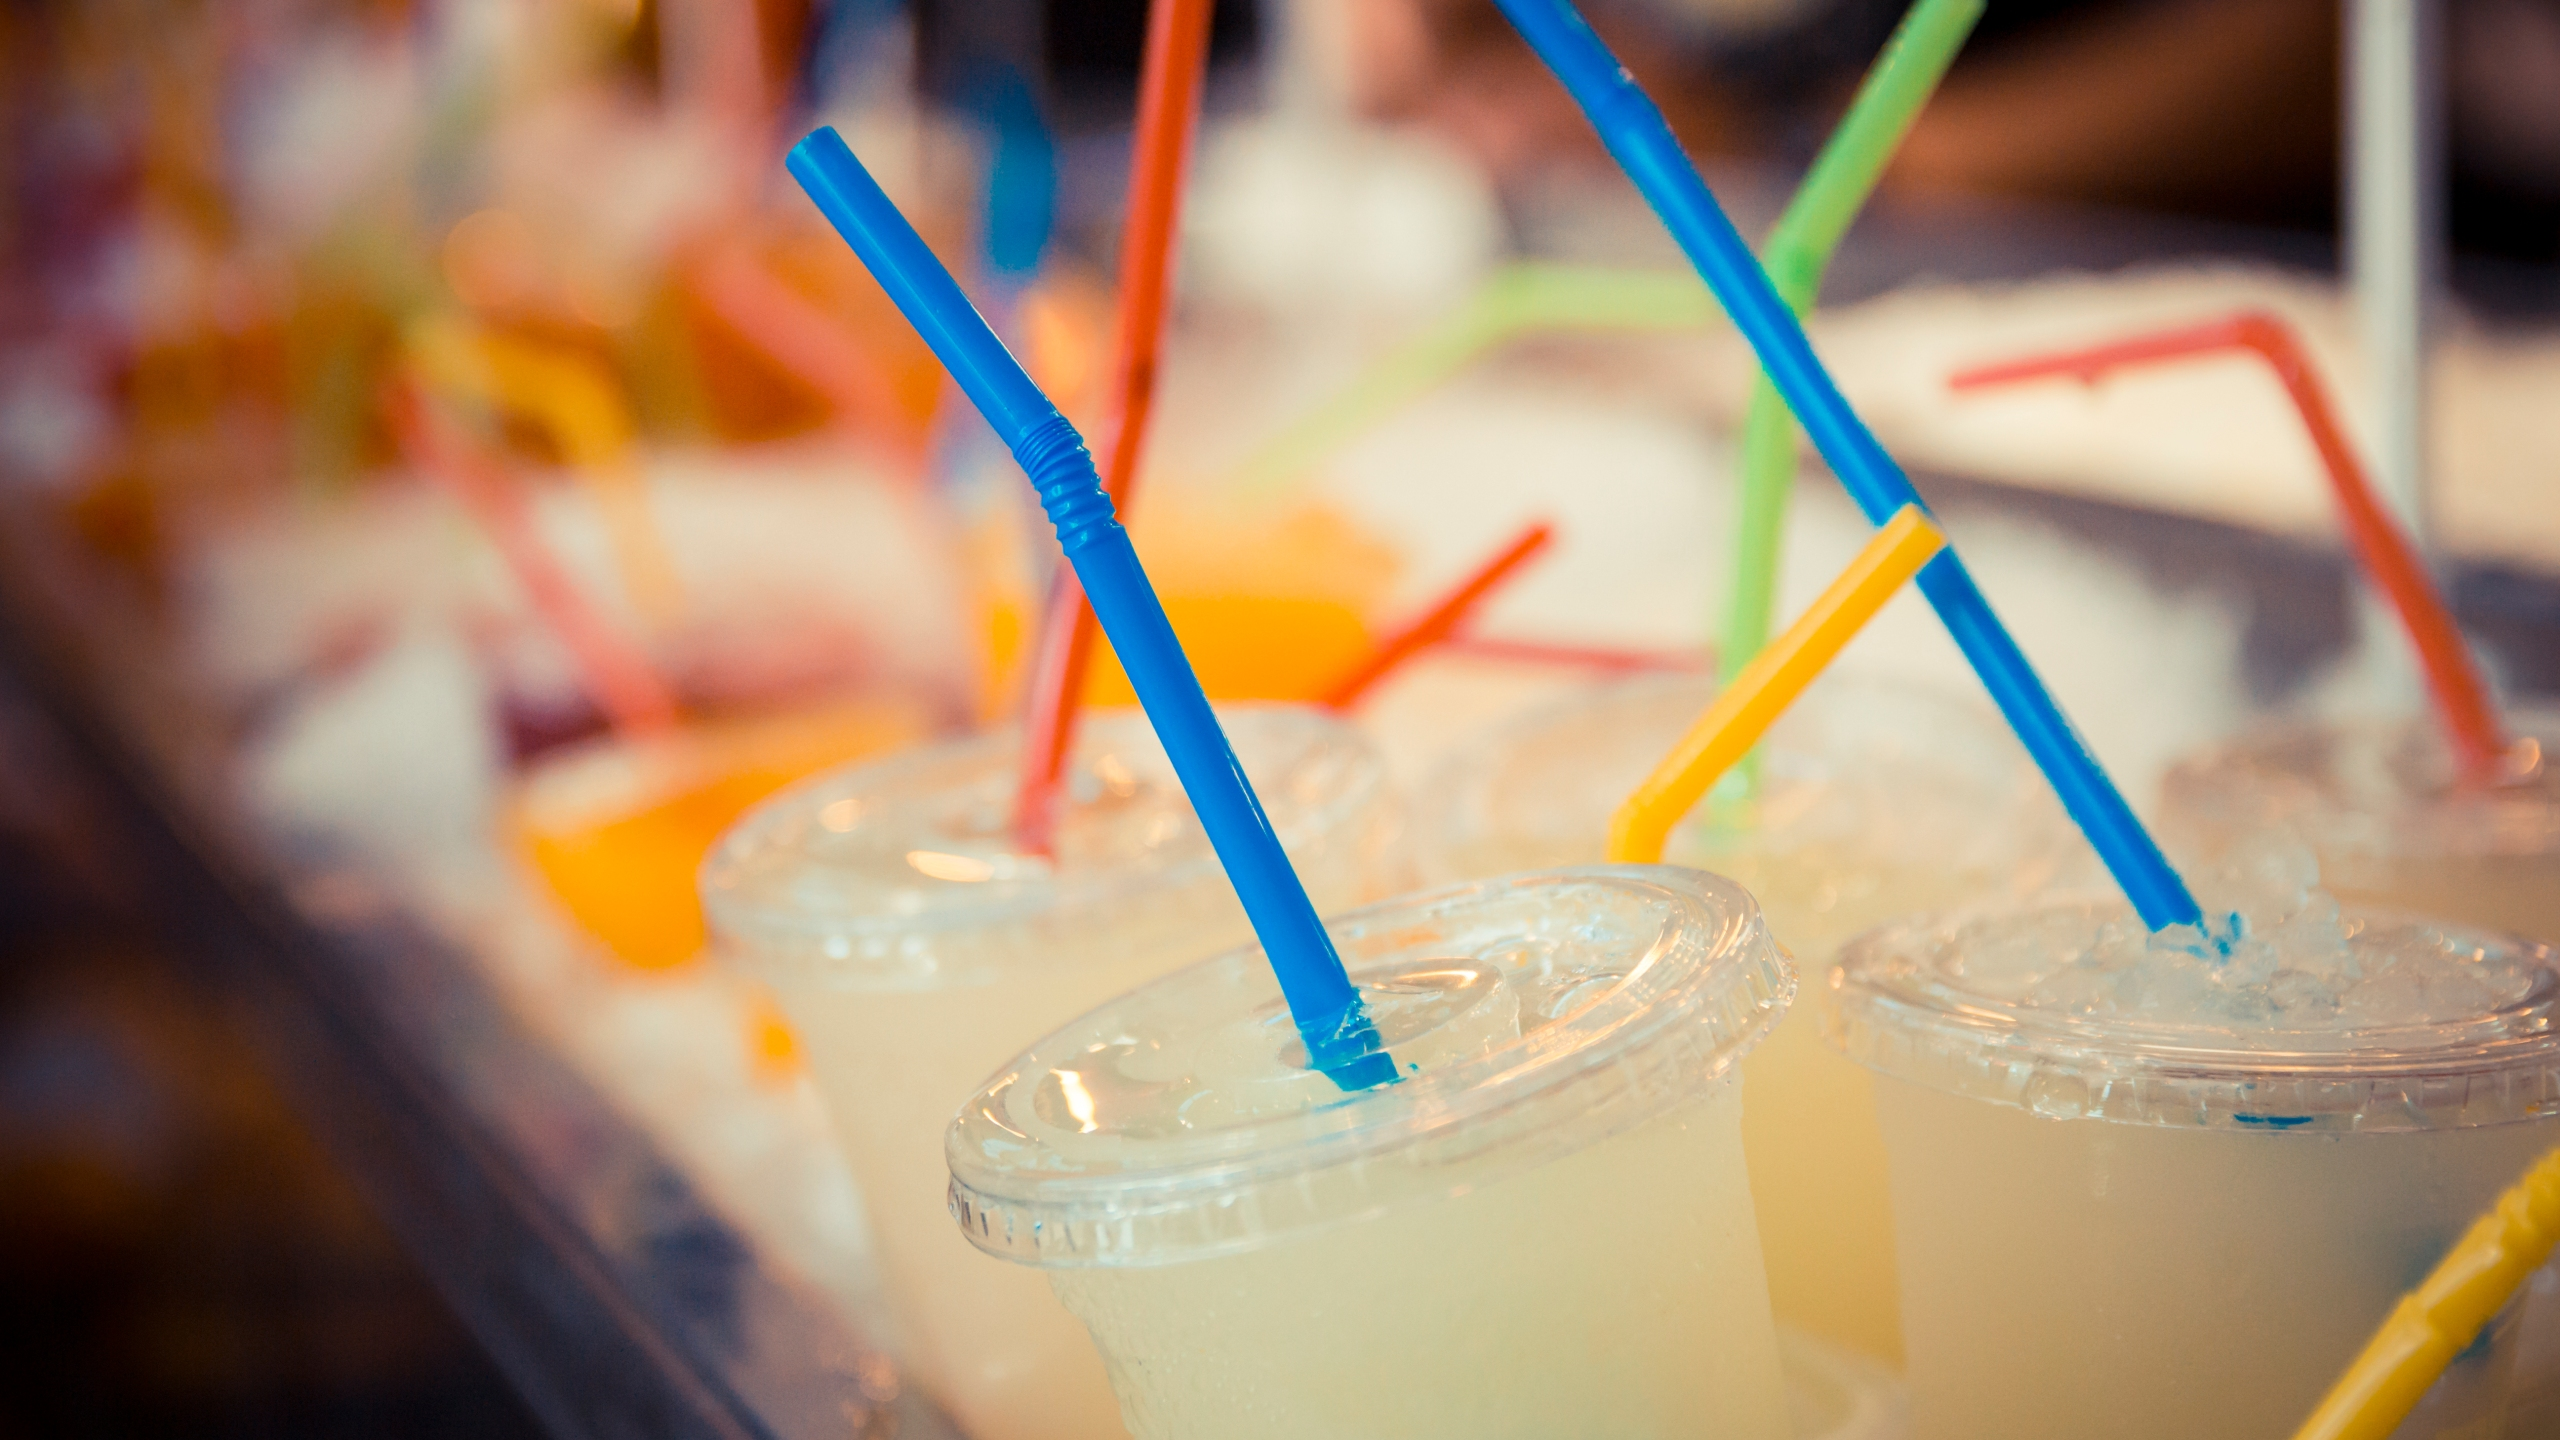 Plastic straws in plastic cups are seen in a file photo. (Credit: iStock / Getty Images Plus)